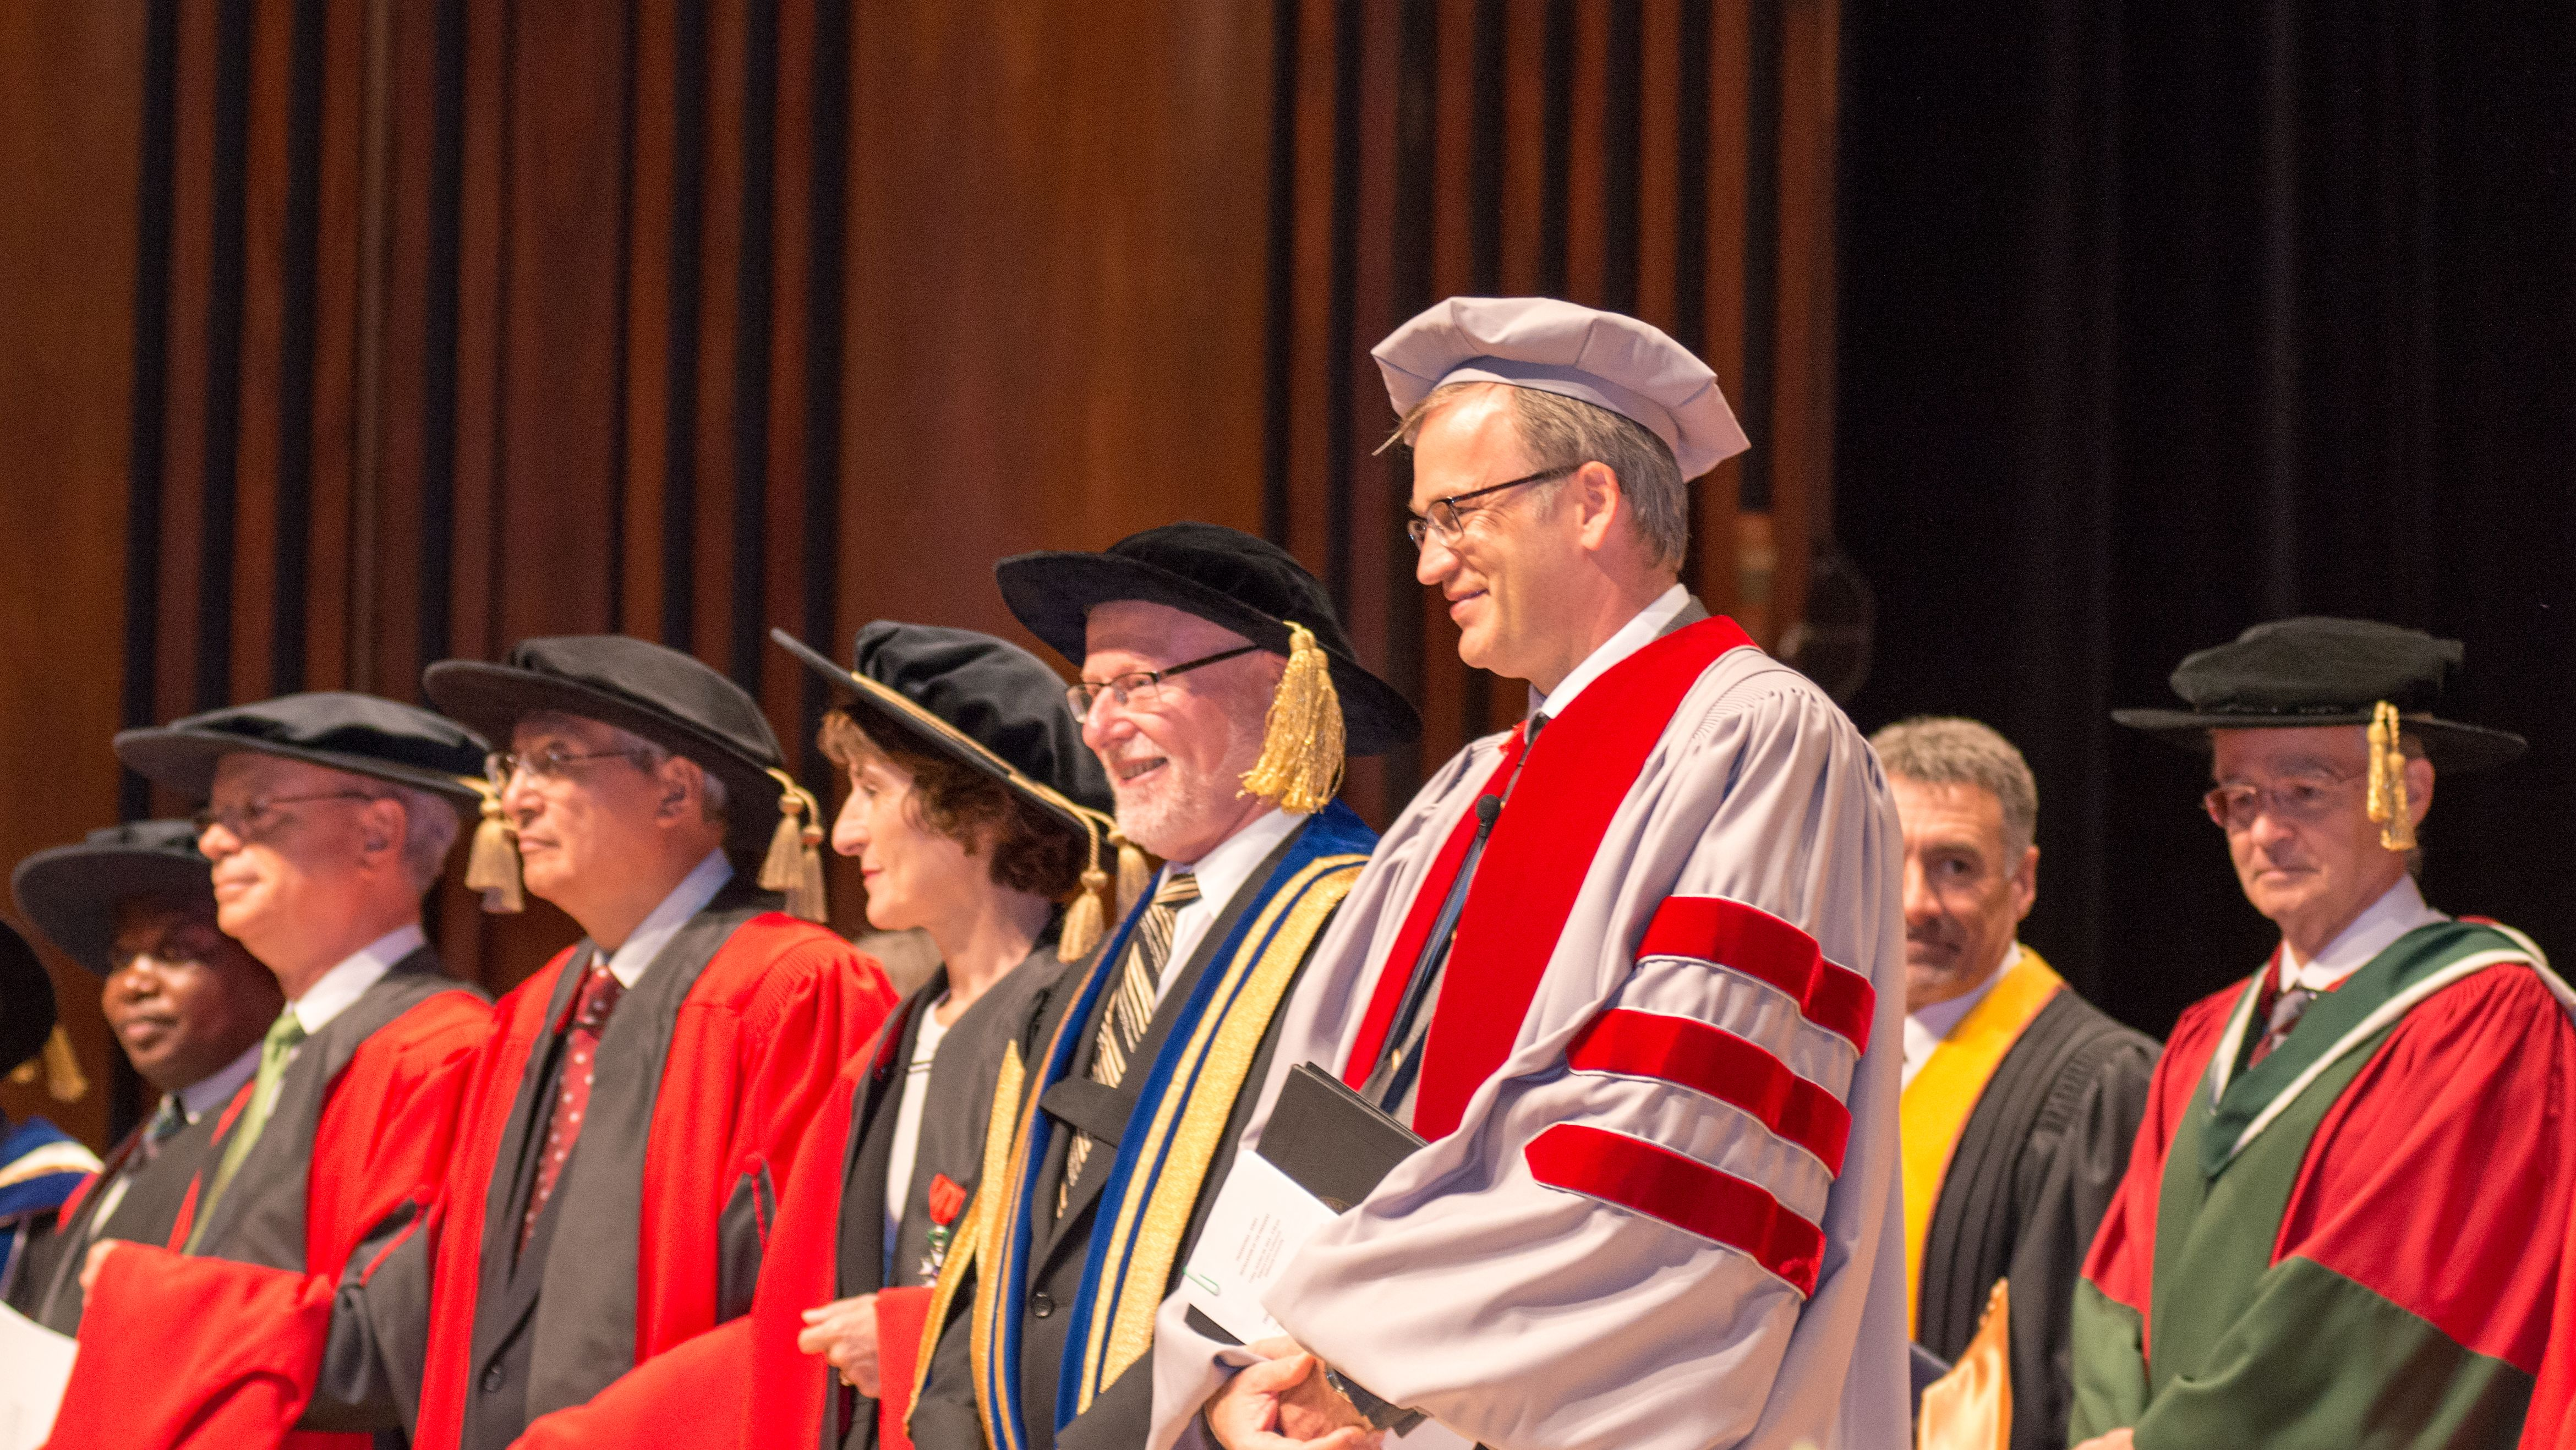 President Richard Florizone, foreground, is joined by his predecessor Tom Traves at the induction ceremony of Dalhousie's 11th president earlier this month. (Photo by Amin Helal)